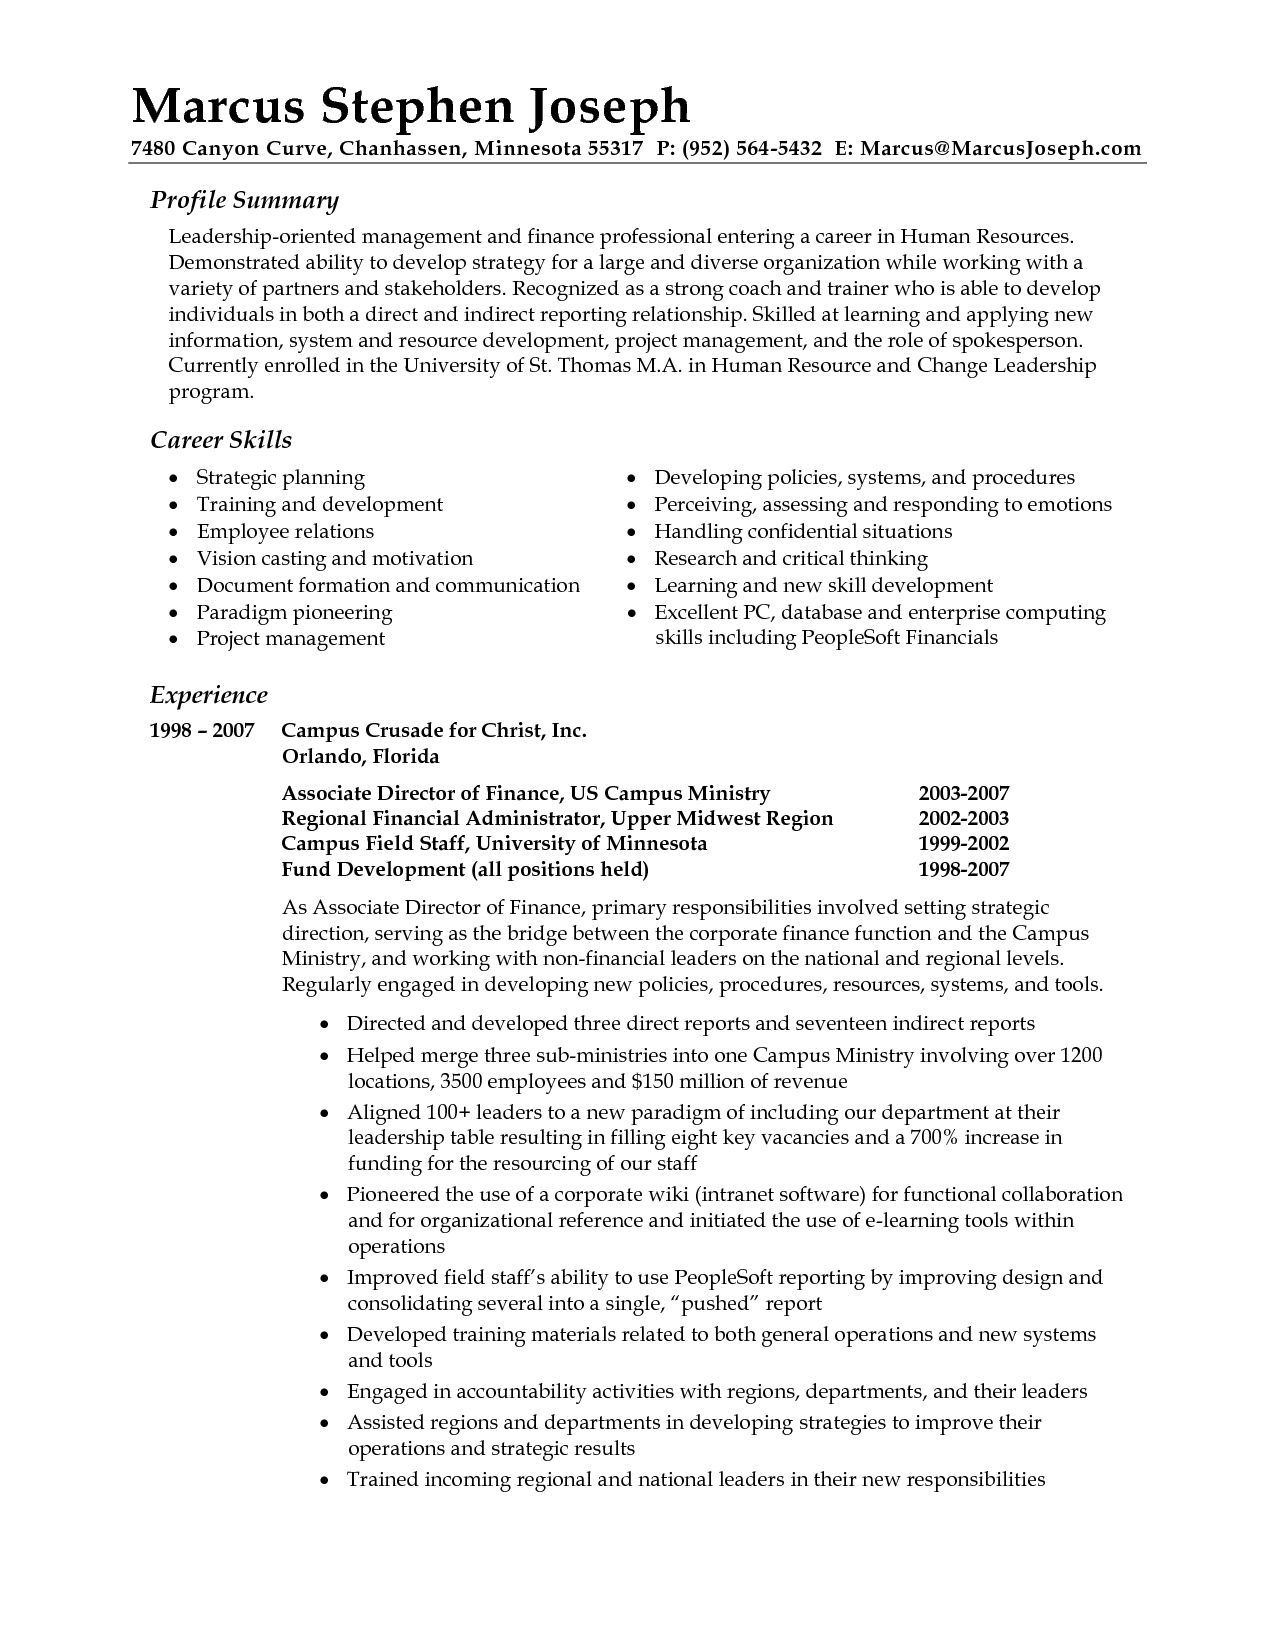 Financial vision statement examples resume summary